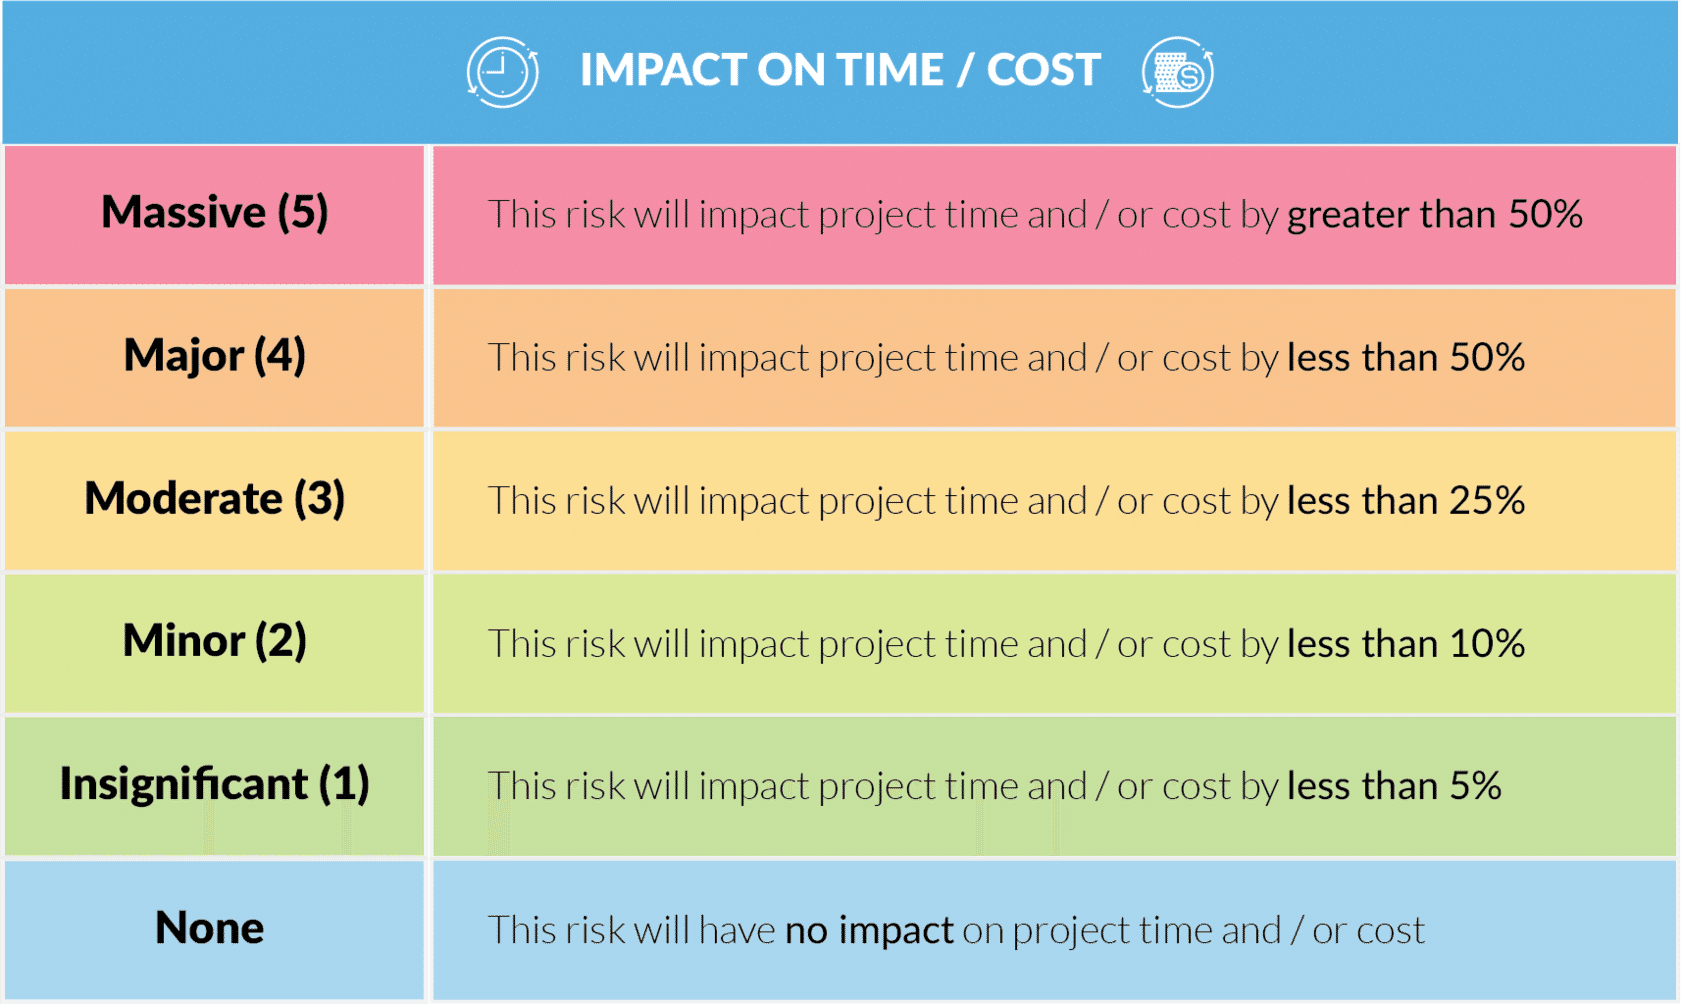 A table shows the impact on time / cost